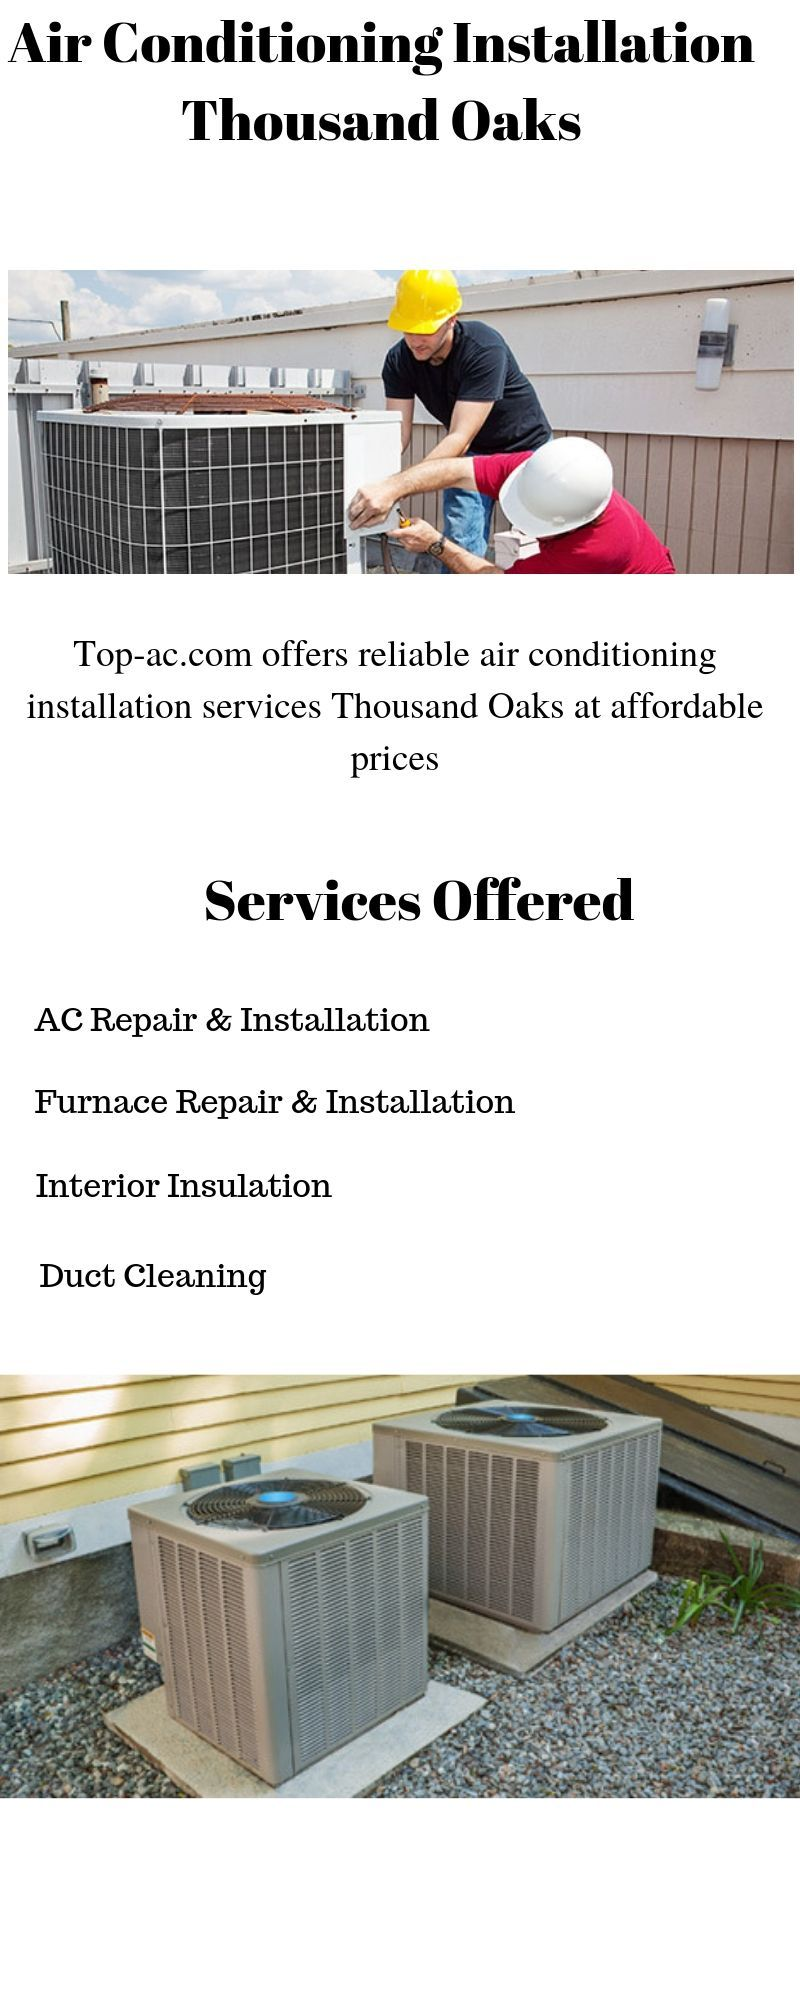 Air Conditioning Installation Thousand Oaks Air